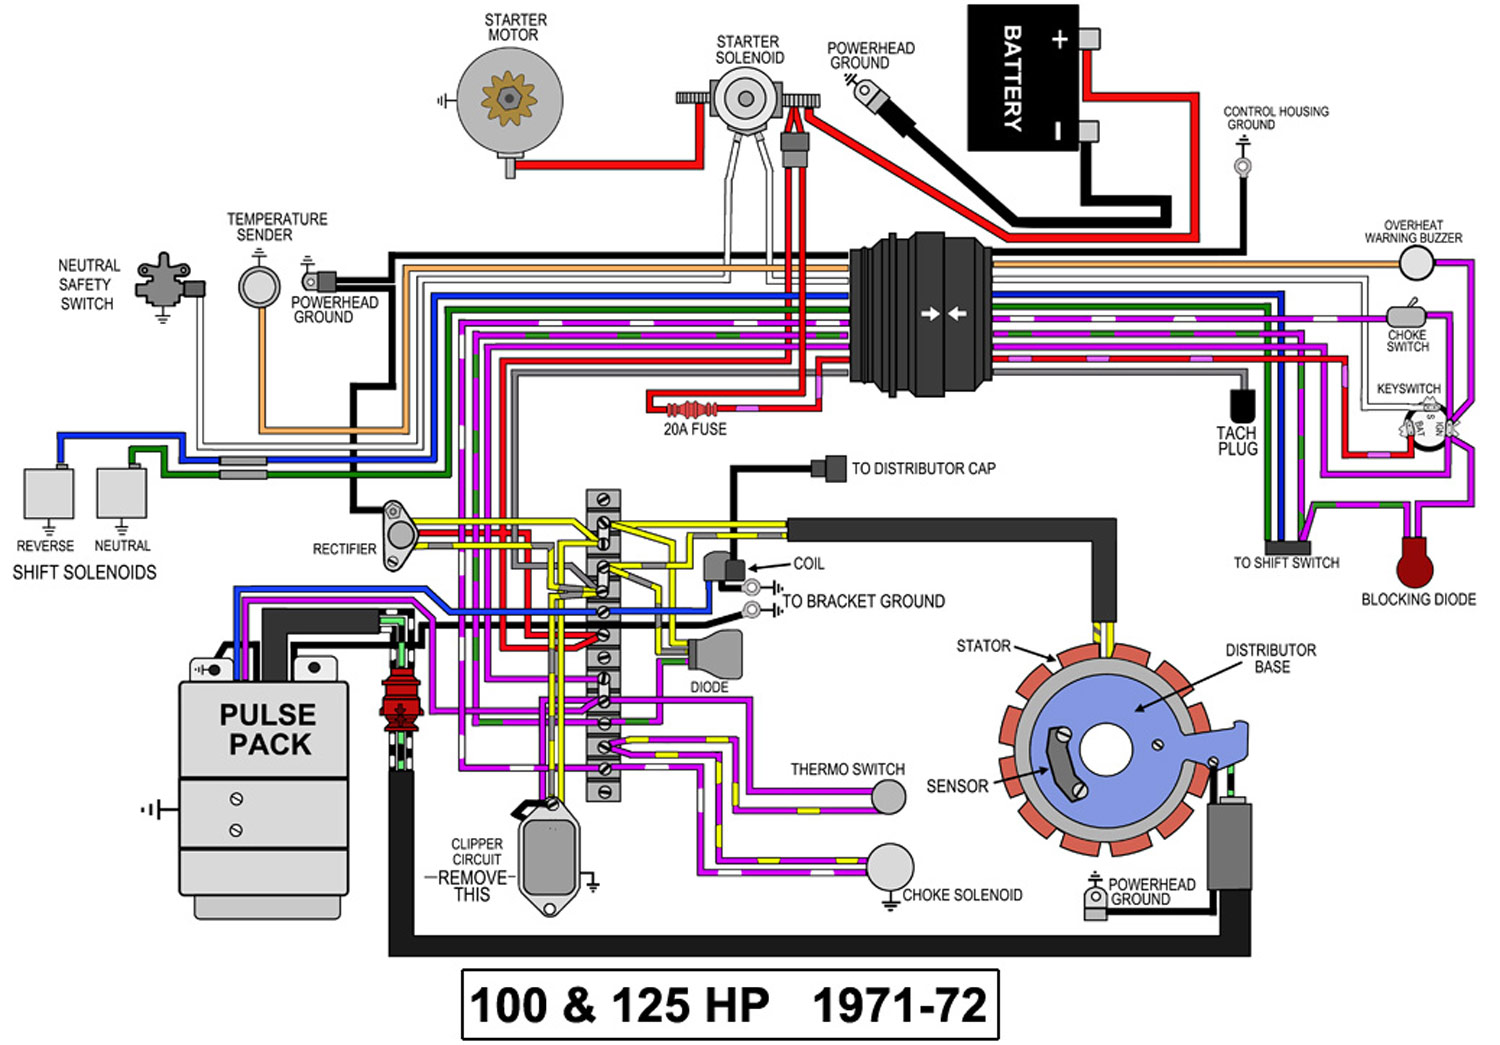 Evinrude Johnson Outboard Wiring Diagrams Mastertech Marine Basic Starter Motor Diagram 100 125 Hp